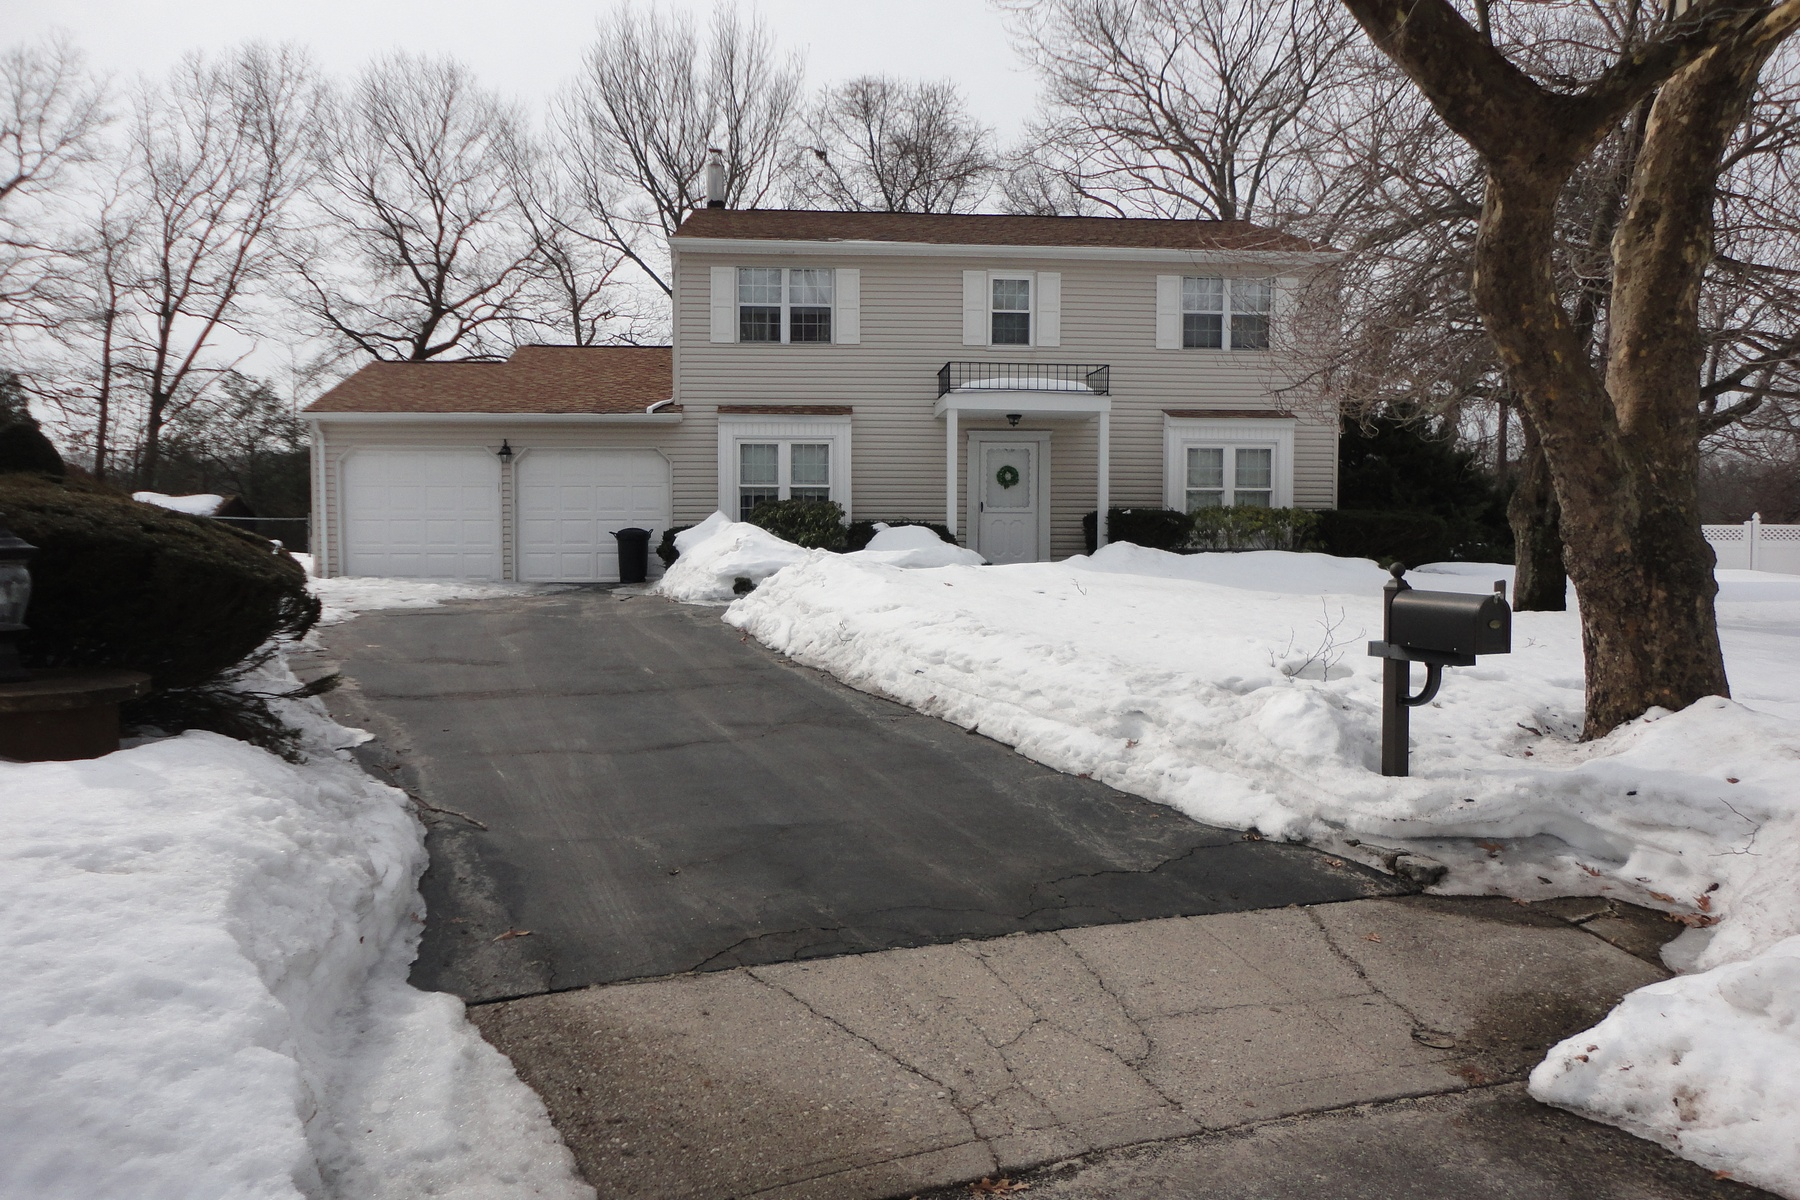 Single Family Home for Sale at Colonial Commack, New York 11725 United States